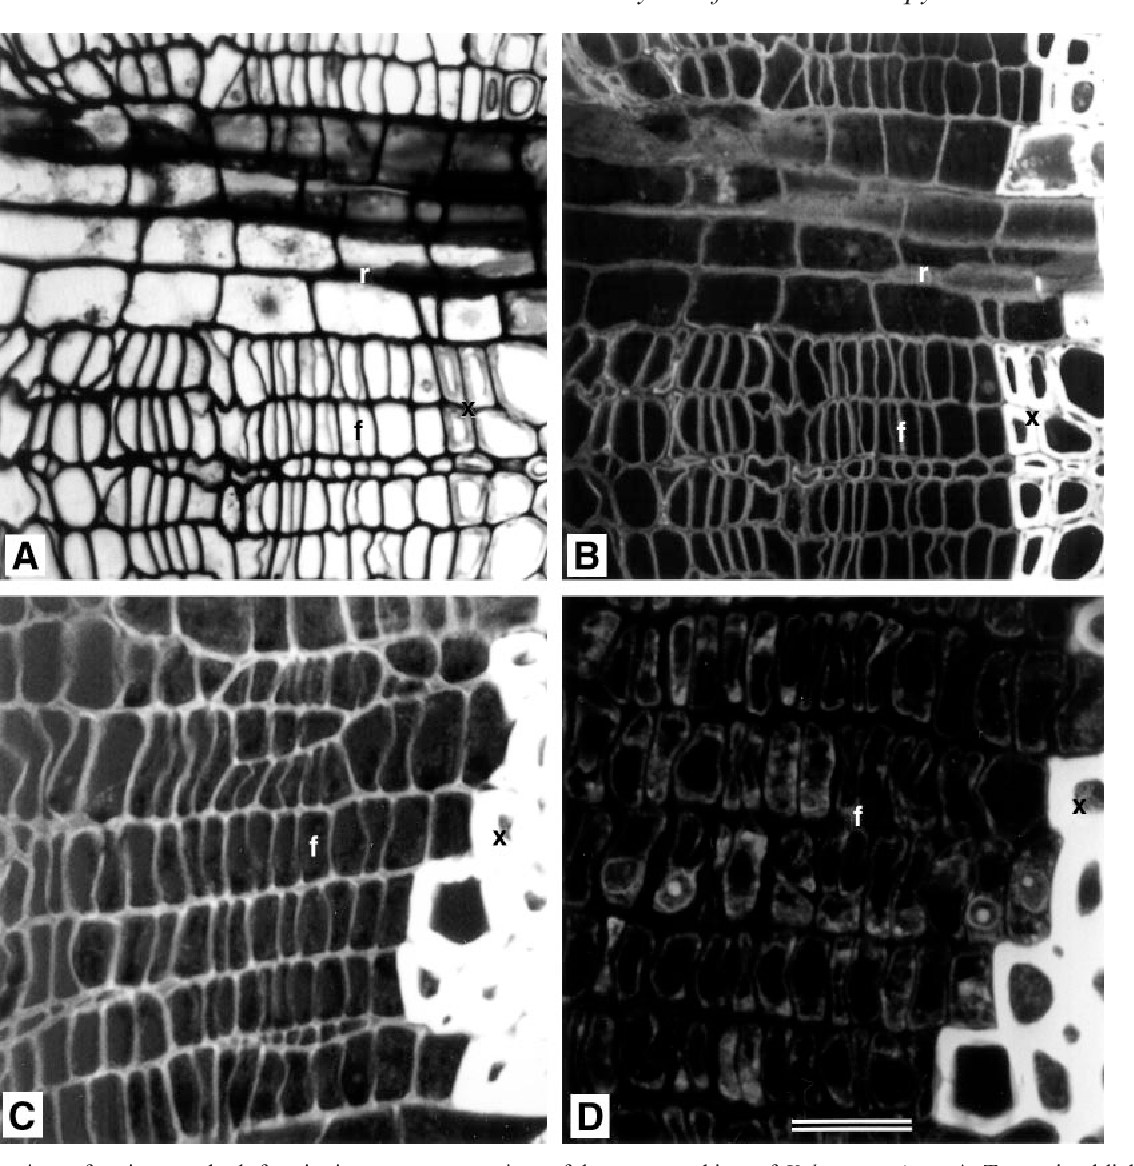 FIG. 1. Comparison of various methods for viewing transverse sections of dormant cambium of Kalopanax pictus. A, Transmitted-light image of a 3 mm thick section of an epoxy-embedded specimen stained with safranin. B, Confocal image of the section in A viewed with incident-light excitation by the helium neon laser (543 nm) and the long-pass ®lter (LP; 590 nm); the primary walls of cambial cells are bright and the cell lumens are dark. C, Confocal image of a hand-cut section, stained with safranin and viewed under the same conditions as in B. D, Confocal image of a hand-cut section, without staining, viewed with excitation by the argon ion laser (488 nm) and the band-pass ®lter (BP; 515±565 nm). In D the primary walls of cambial cells cannot be seen but ¯uorescence images of both the nuclei and the cytoplasm are visible. The section shown in A and B was from a specimen that had been ®xed in 4% glutaraldehyde and the sections shown in C and D were from specimens ®xed in FAA. f